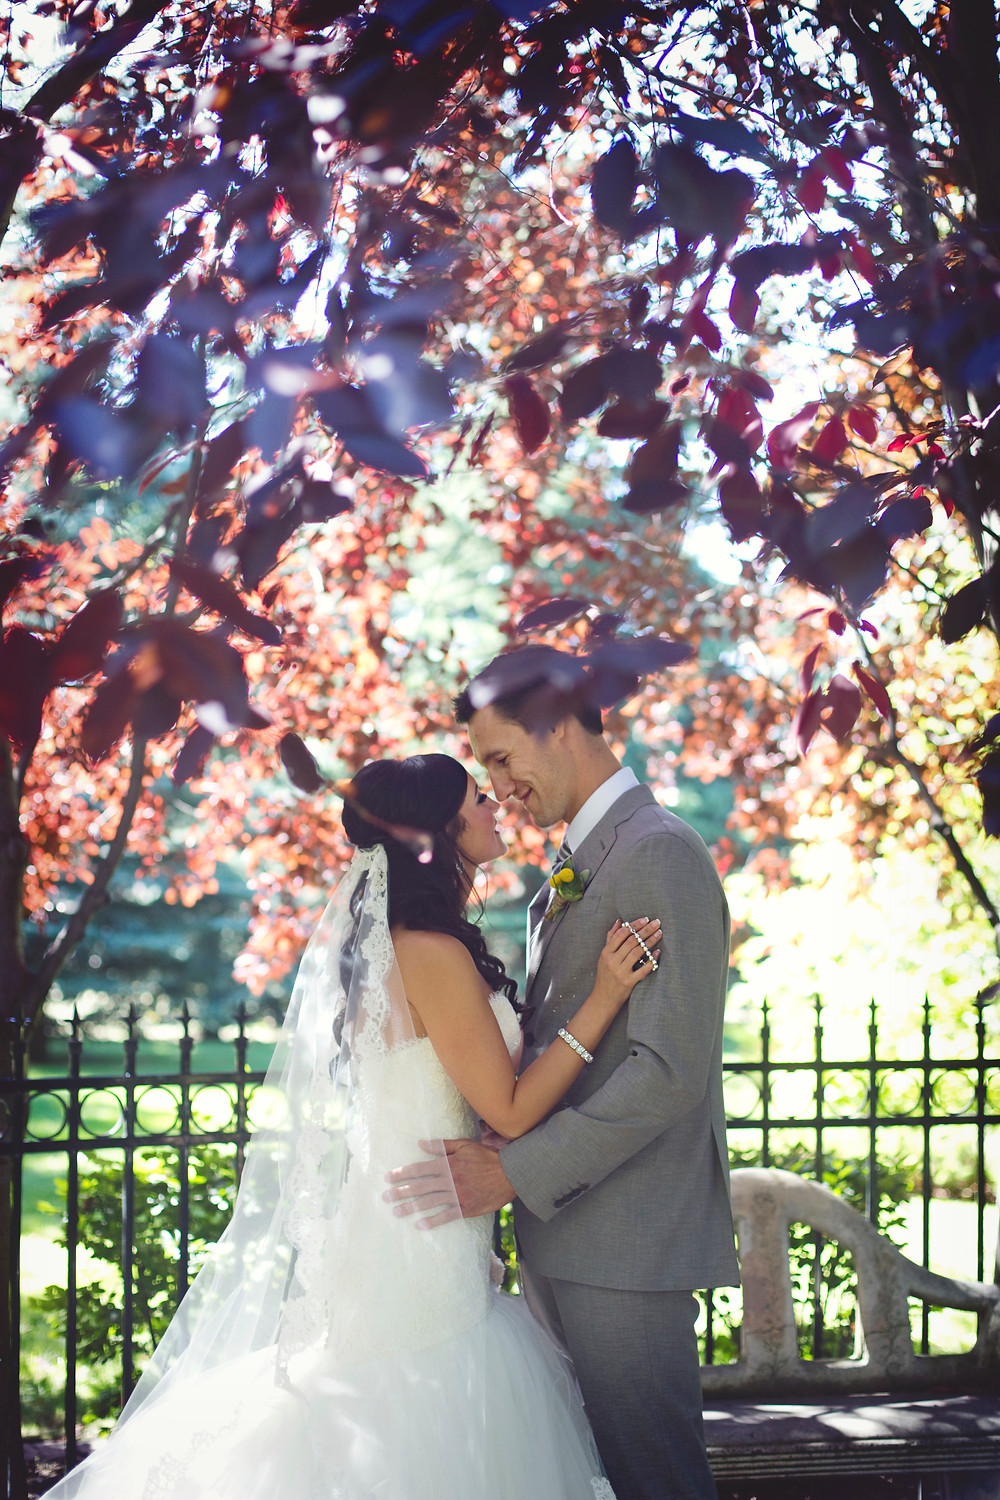 A bride in a tulle and lace wedding dress and a groom in a grey suit standing under some trees next to a fountain on their wedding day.